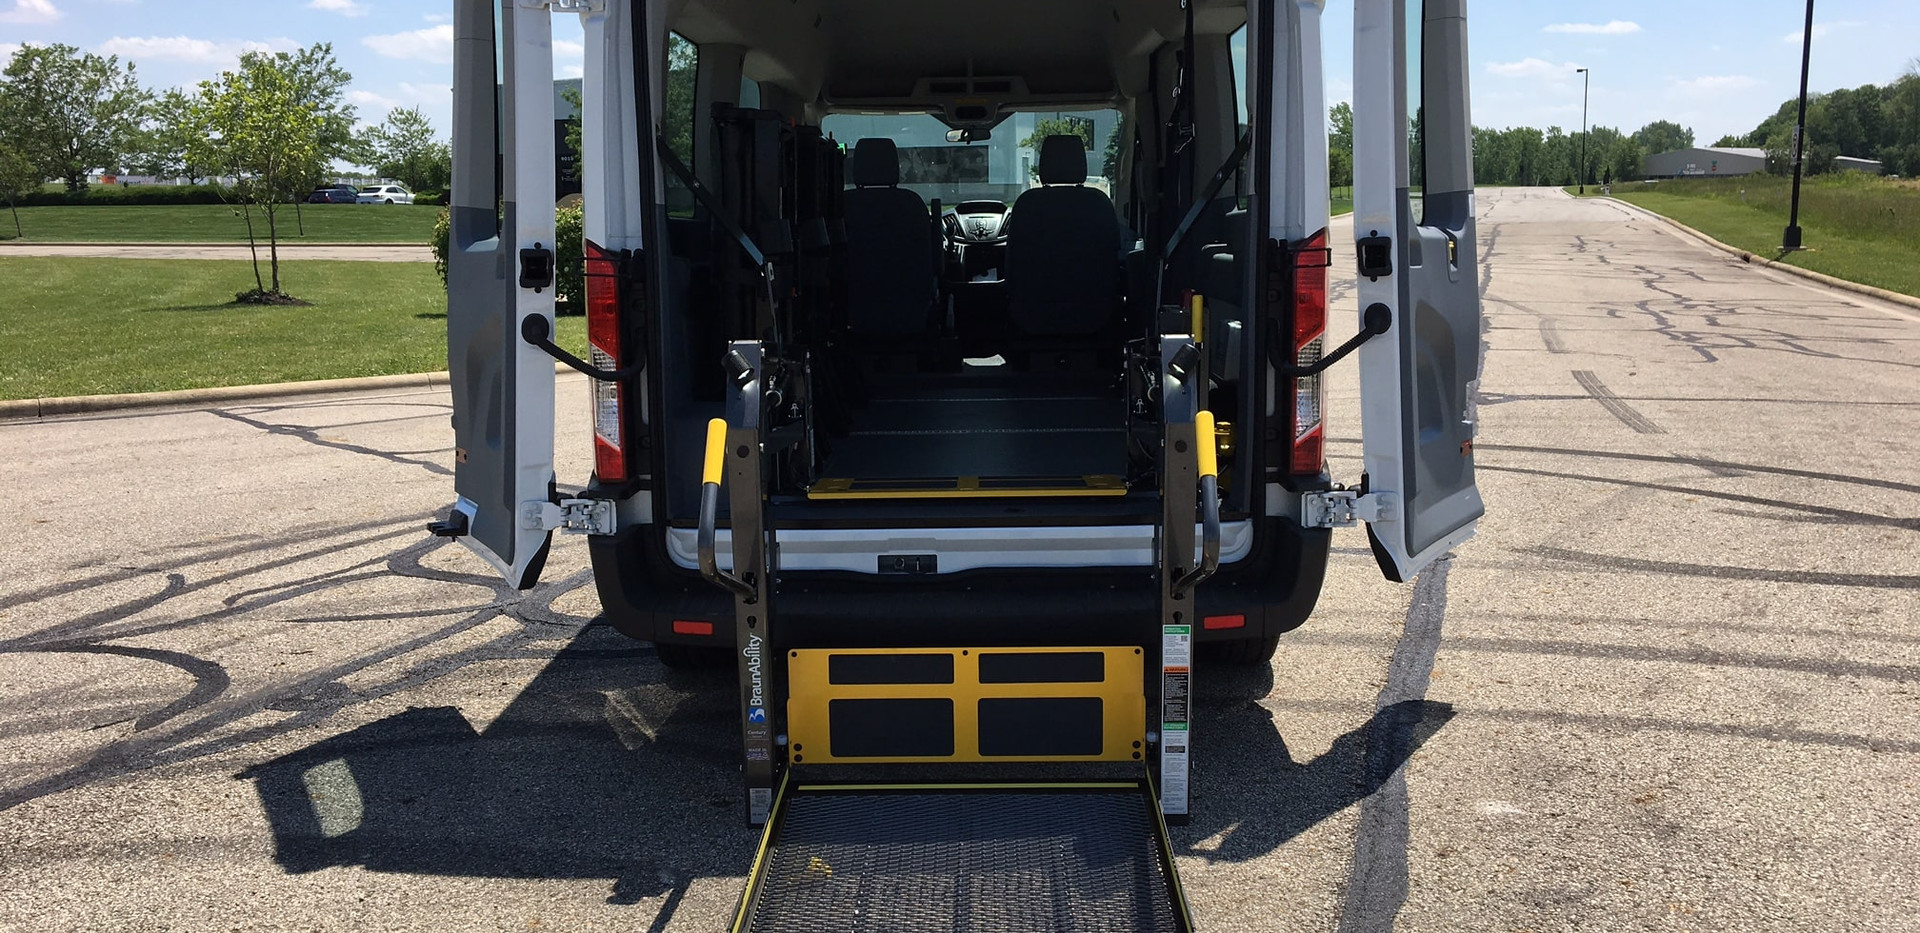 Prime-Time Ford Transit - 2 Wheelchair